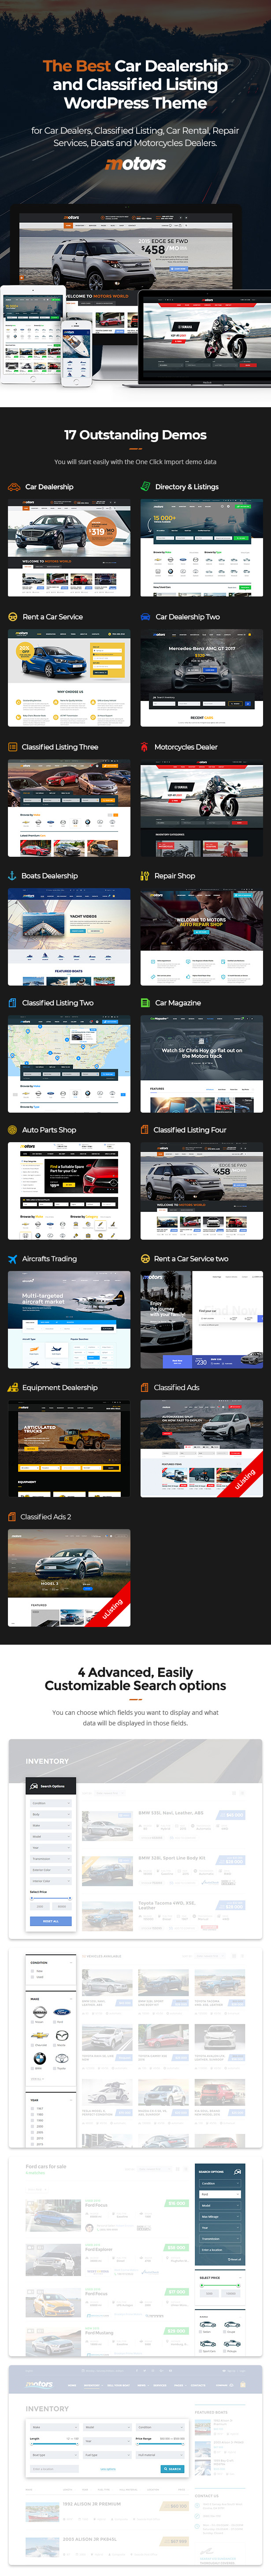 Motors - Automotive, Car Dealership, Car Rental, Auto, Classified Ads, Listing WordPress Theme - 3